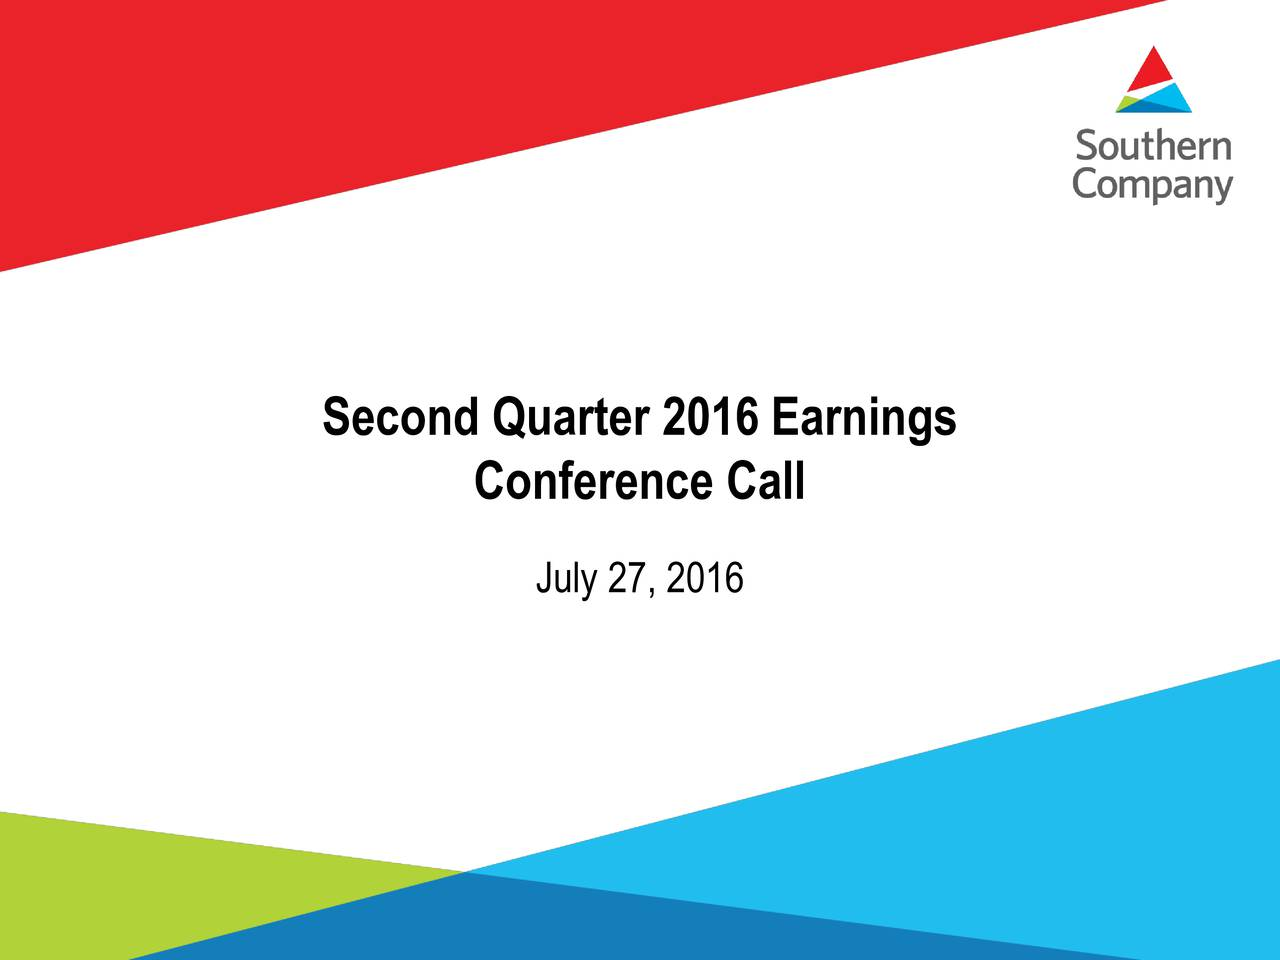 Conference Call July 27, 2016